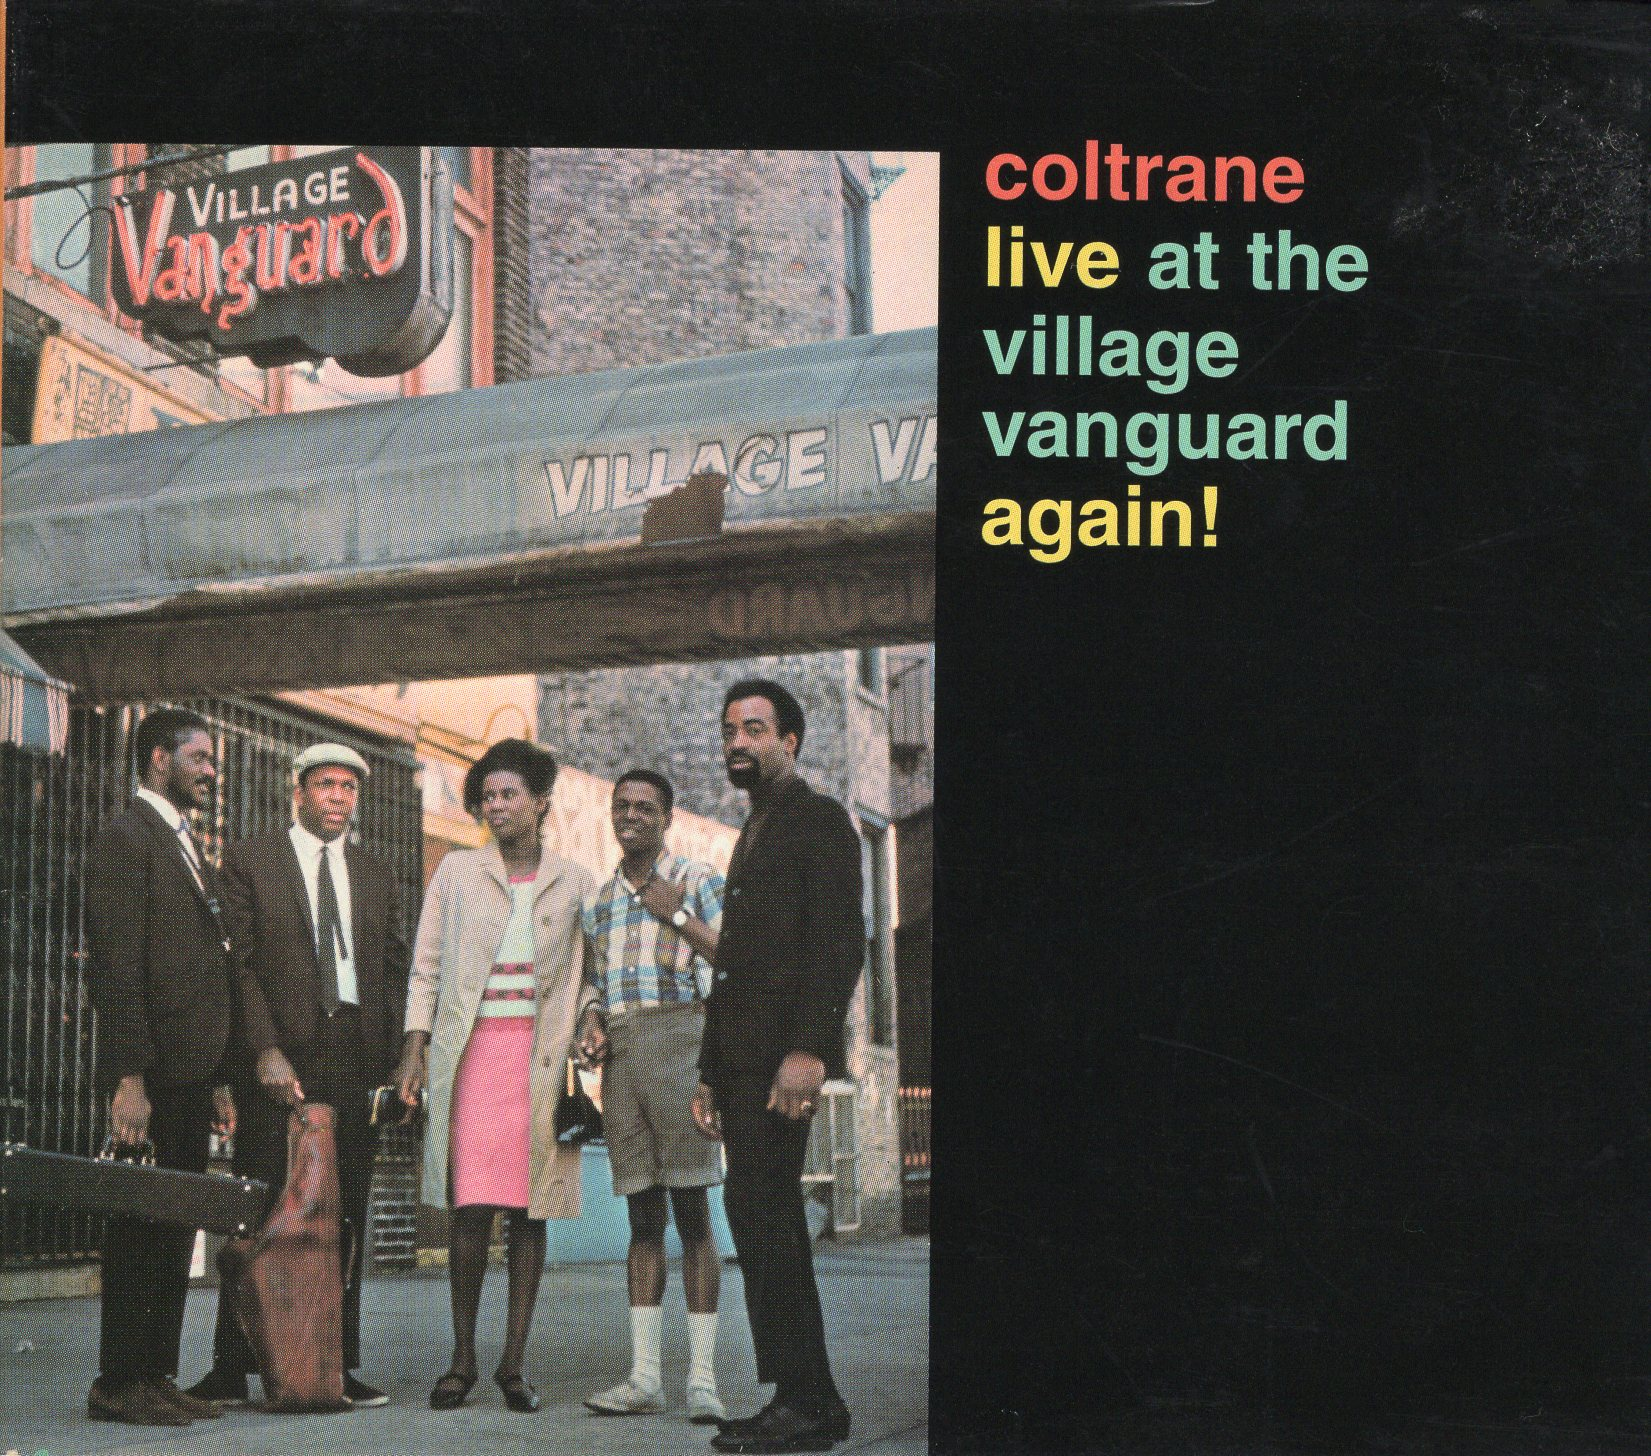 """Coltrane Live at the Village Vanguard again!"" John Coltrane"